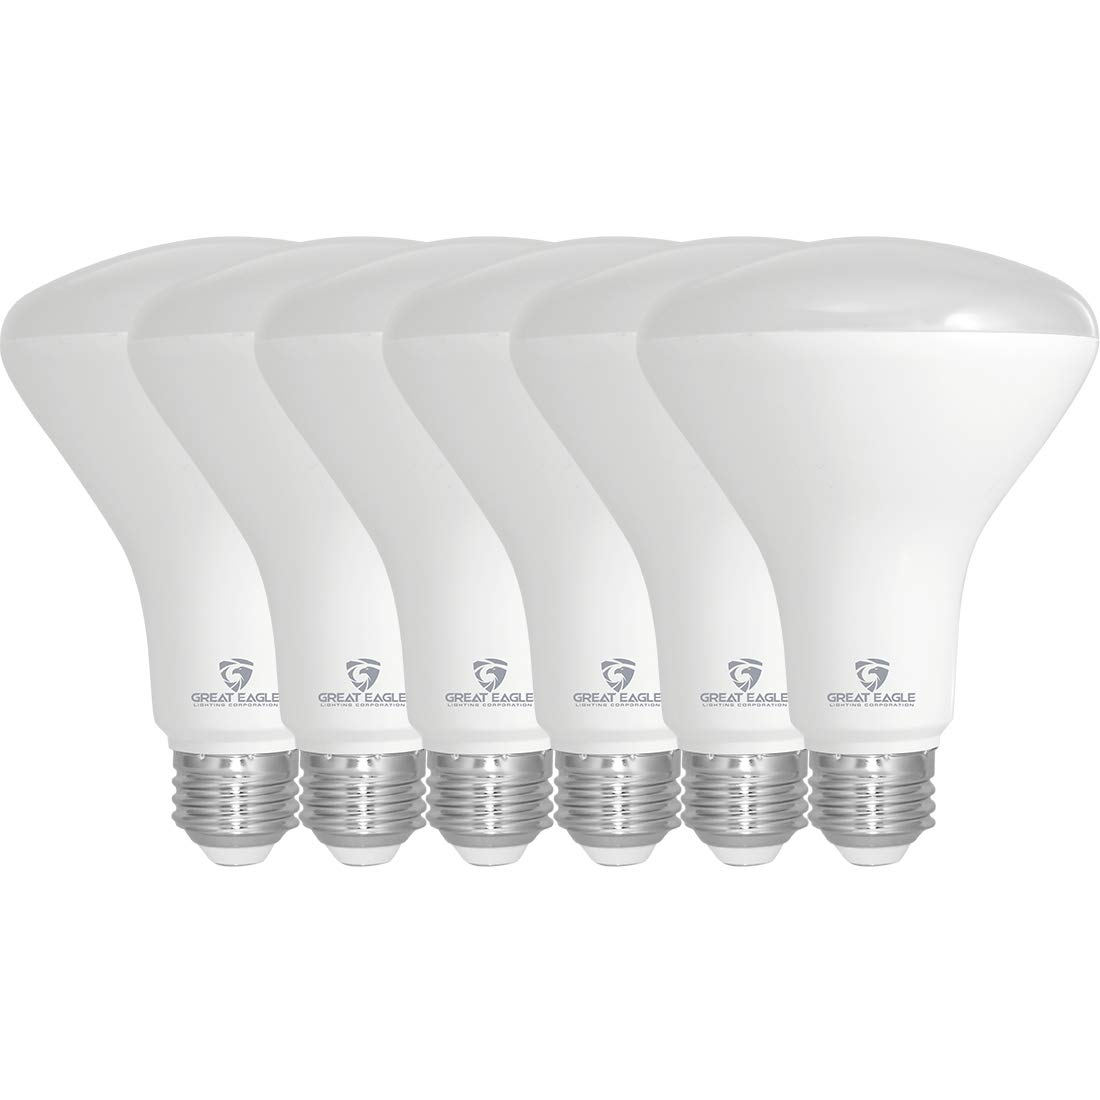 Great Eagle R30 or BR30 LED Bulb, 11W (75W Equivalent), 870 Lumens, Upgrade for 65W and 75W Bulb, 2700K Warm White Color, for Recessed Can Use, Wide Flood Light, Dimmable, and UL Listed (Pack of 6)